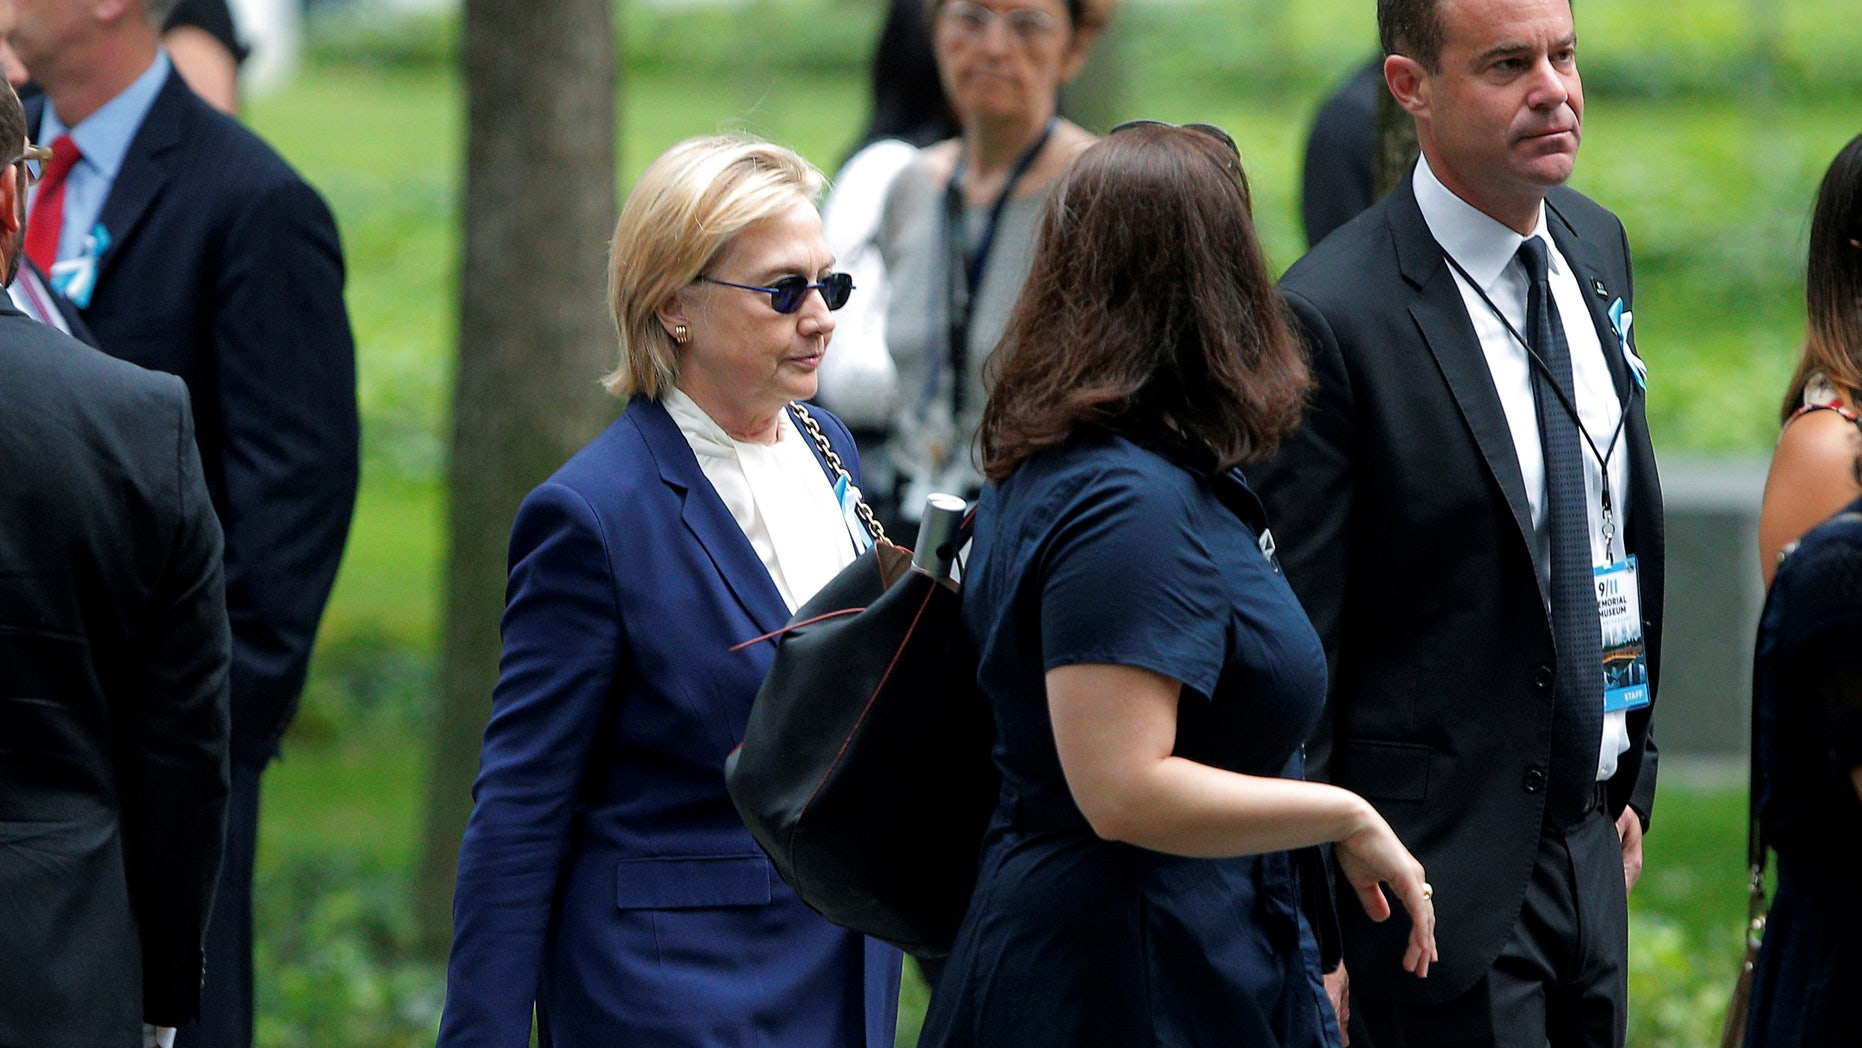 U.S. Democratic presidential candidate Hillary Clinton arrives for ceremonies to mark the 15th anniversary of the September 11 attacks at the National 9/11 Memorial in New York, New York, United States September 11, 2016.  REUTERS/Brian Snyder  - RTSN7US